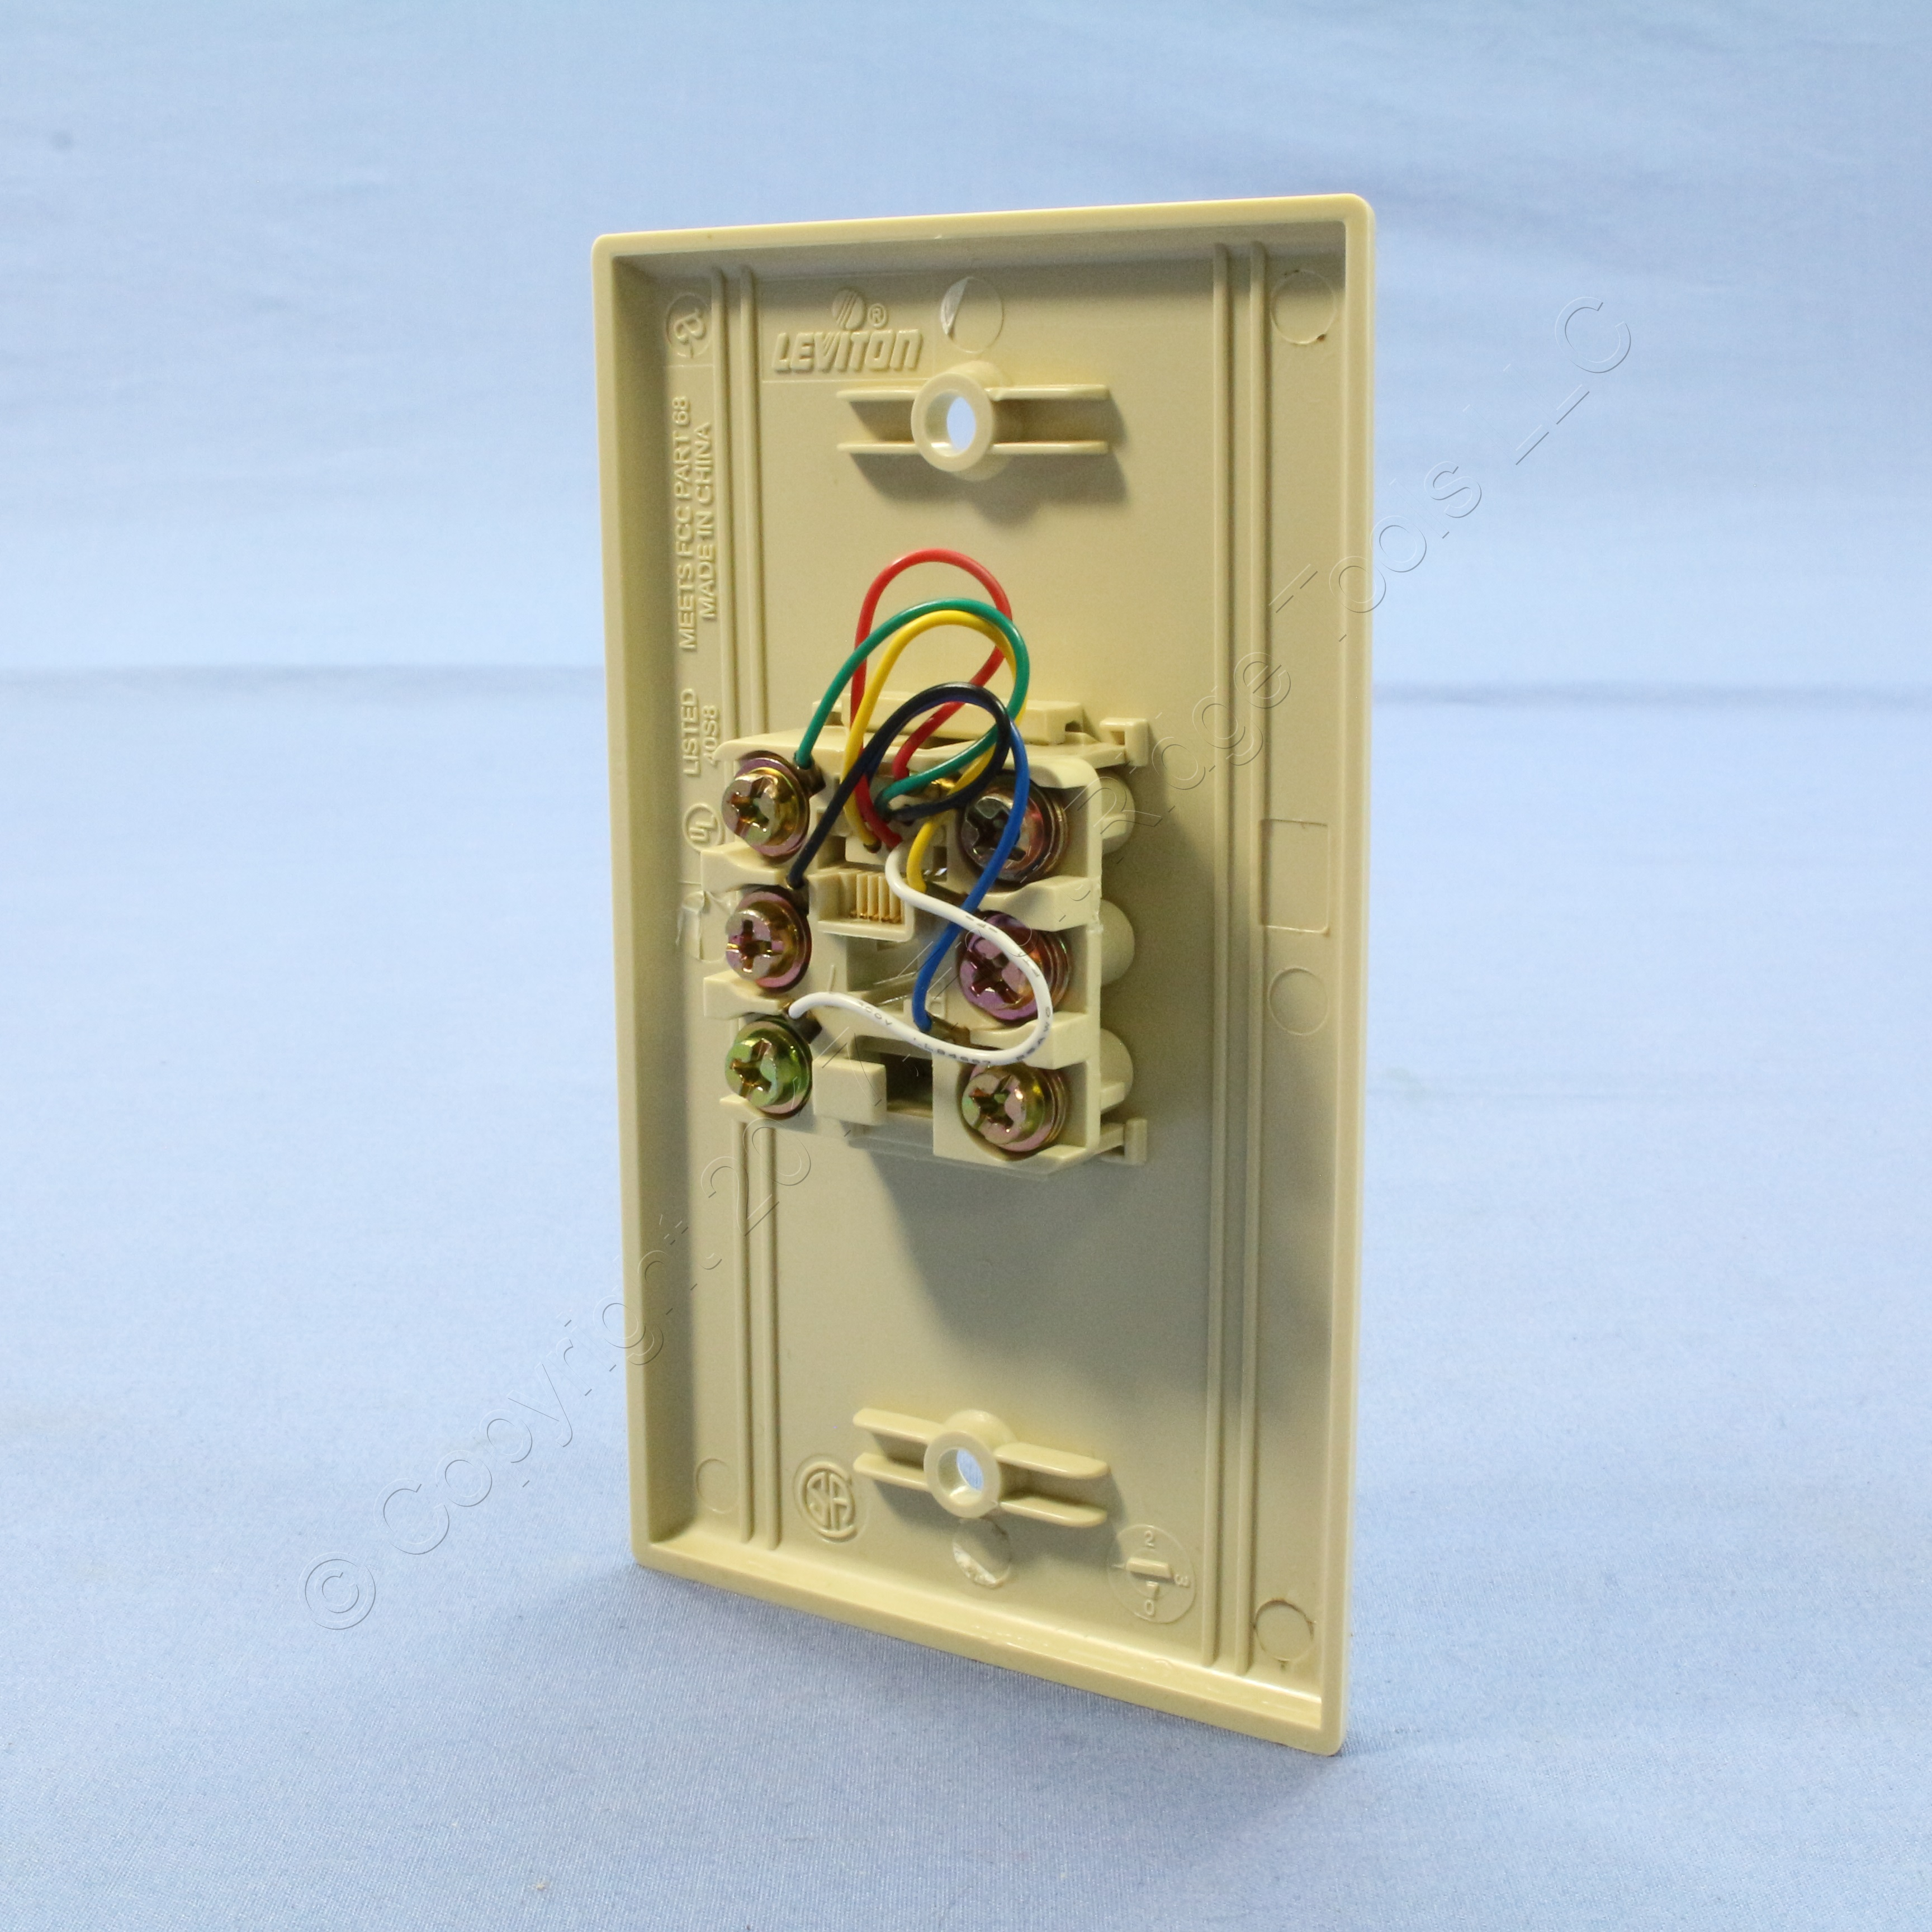 leviton ivory 6 wire modular jack telephone wall plate cover type 625b4 40238 i ebay. Black Bedroom Furniture Sets. Home Design Ideas